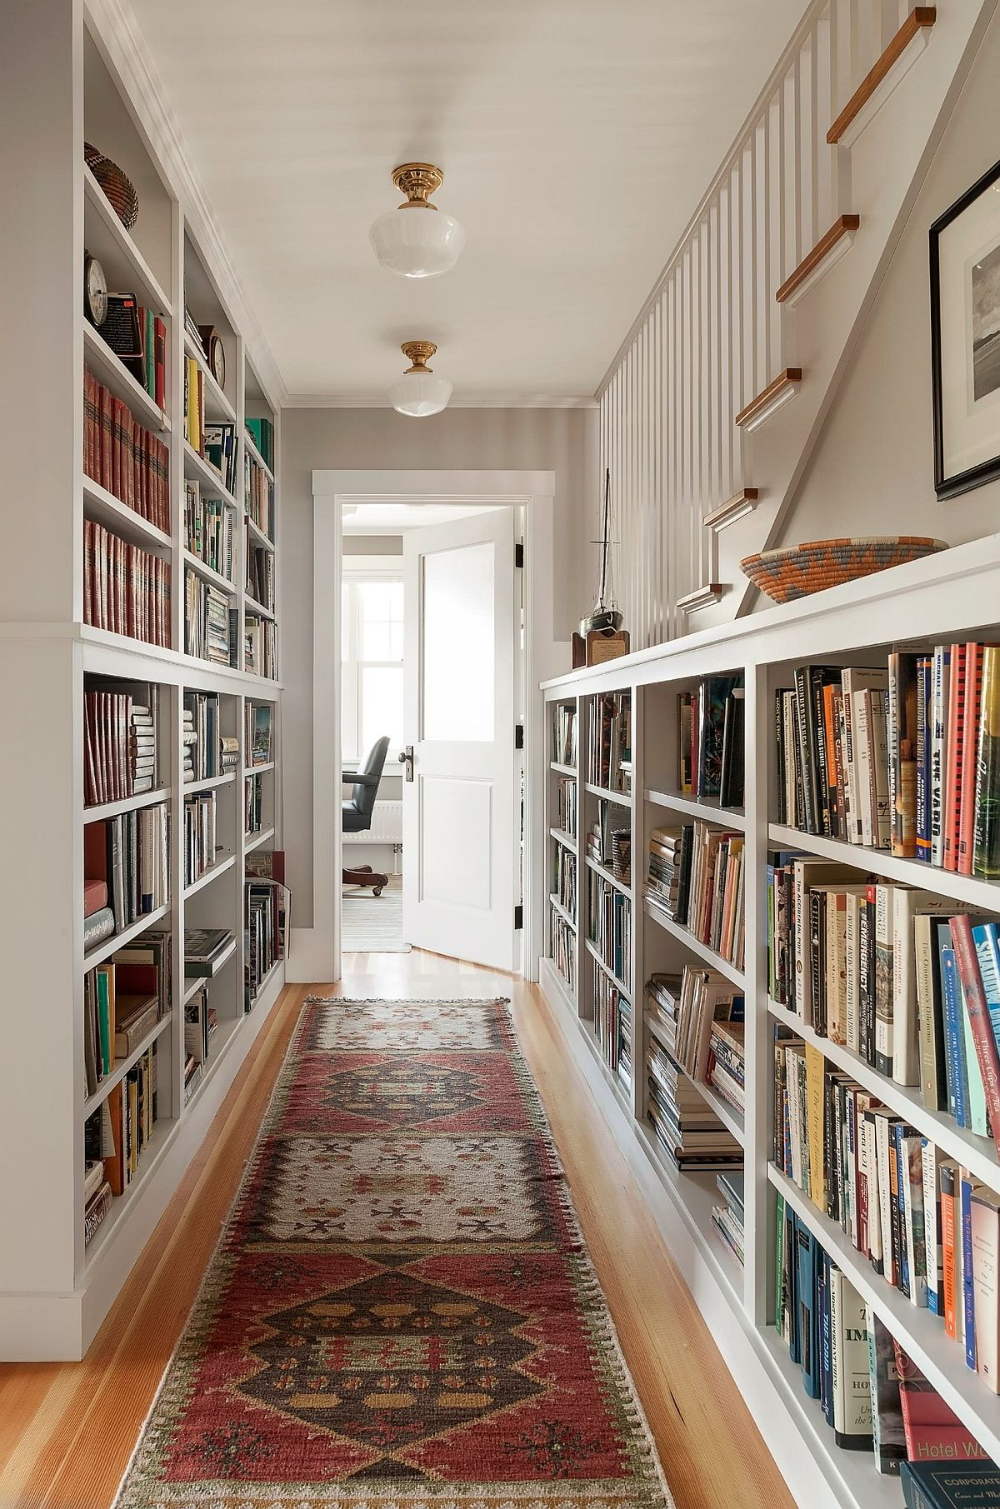 Making Most Of The Hallway Decorating Ideas That Maximize Space And Style In 2020 Small Home Libraries Home Library Design Home